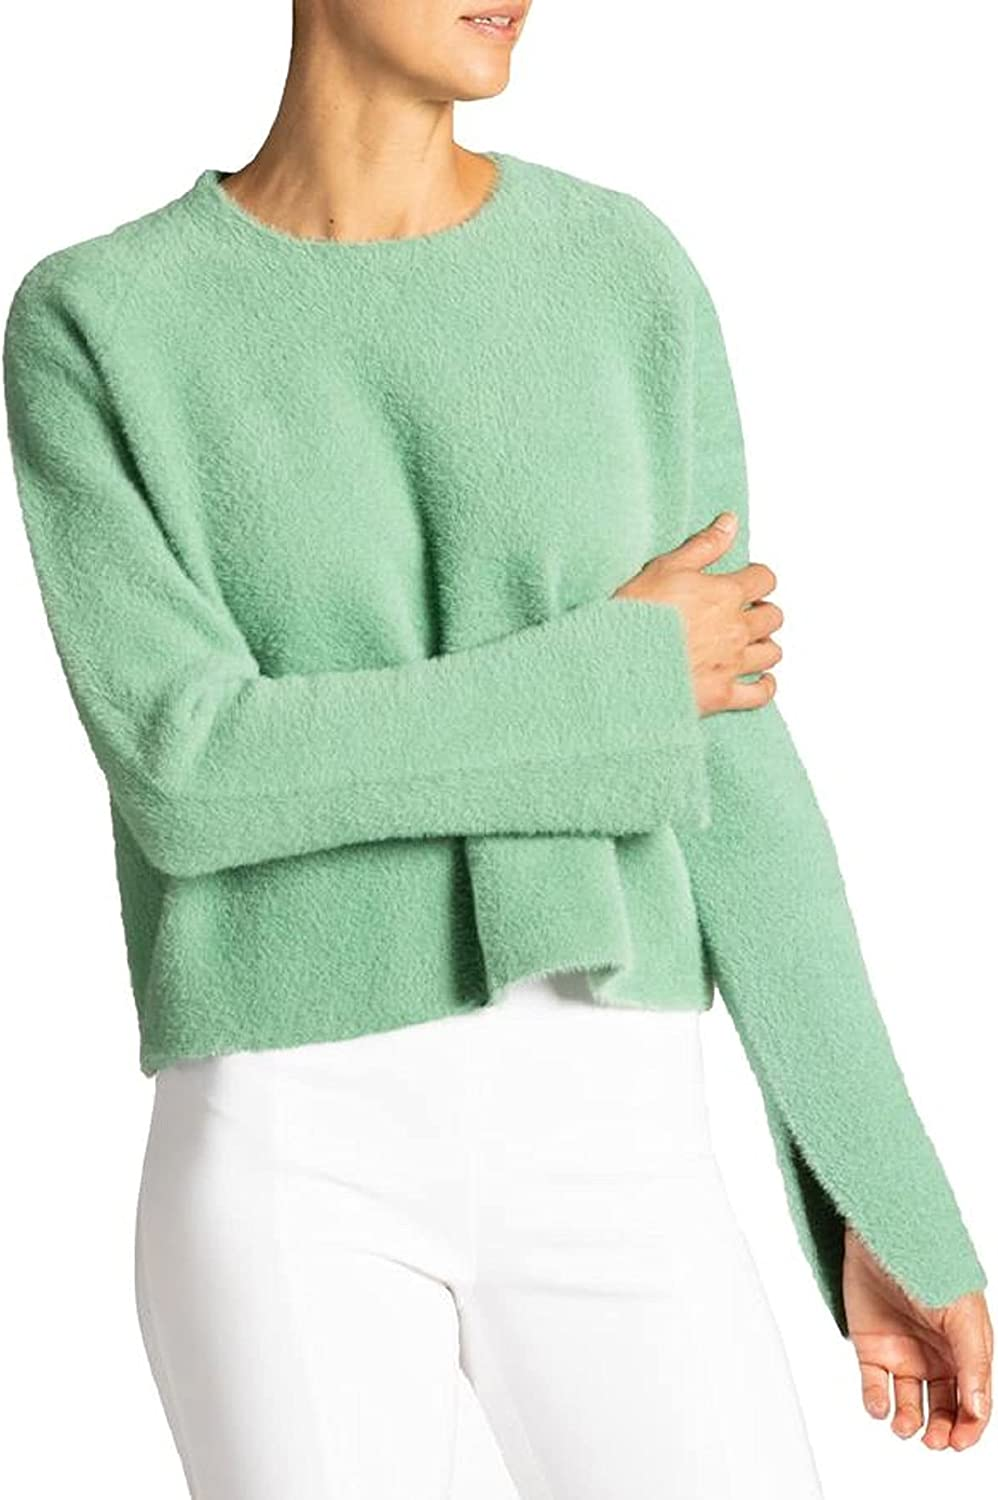 Twinset Milano Women's Crewneck Knitted Fl Directly managed store Faux Woven 55% OFF Sweater in